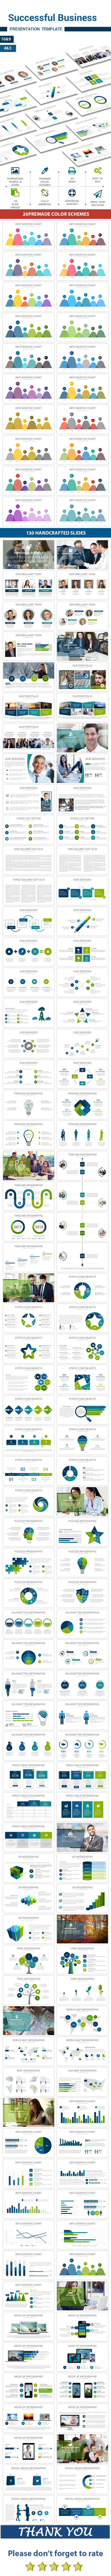 Successful Business PowerPoint Presentation Template - PowerPoint Templates Presentation Templates